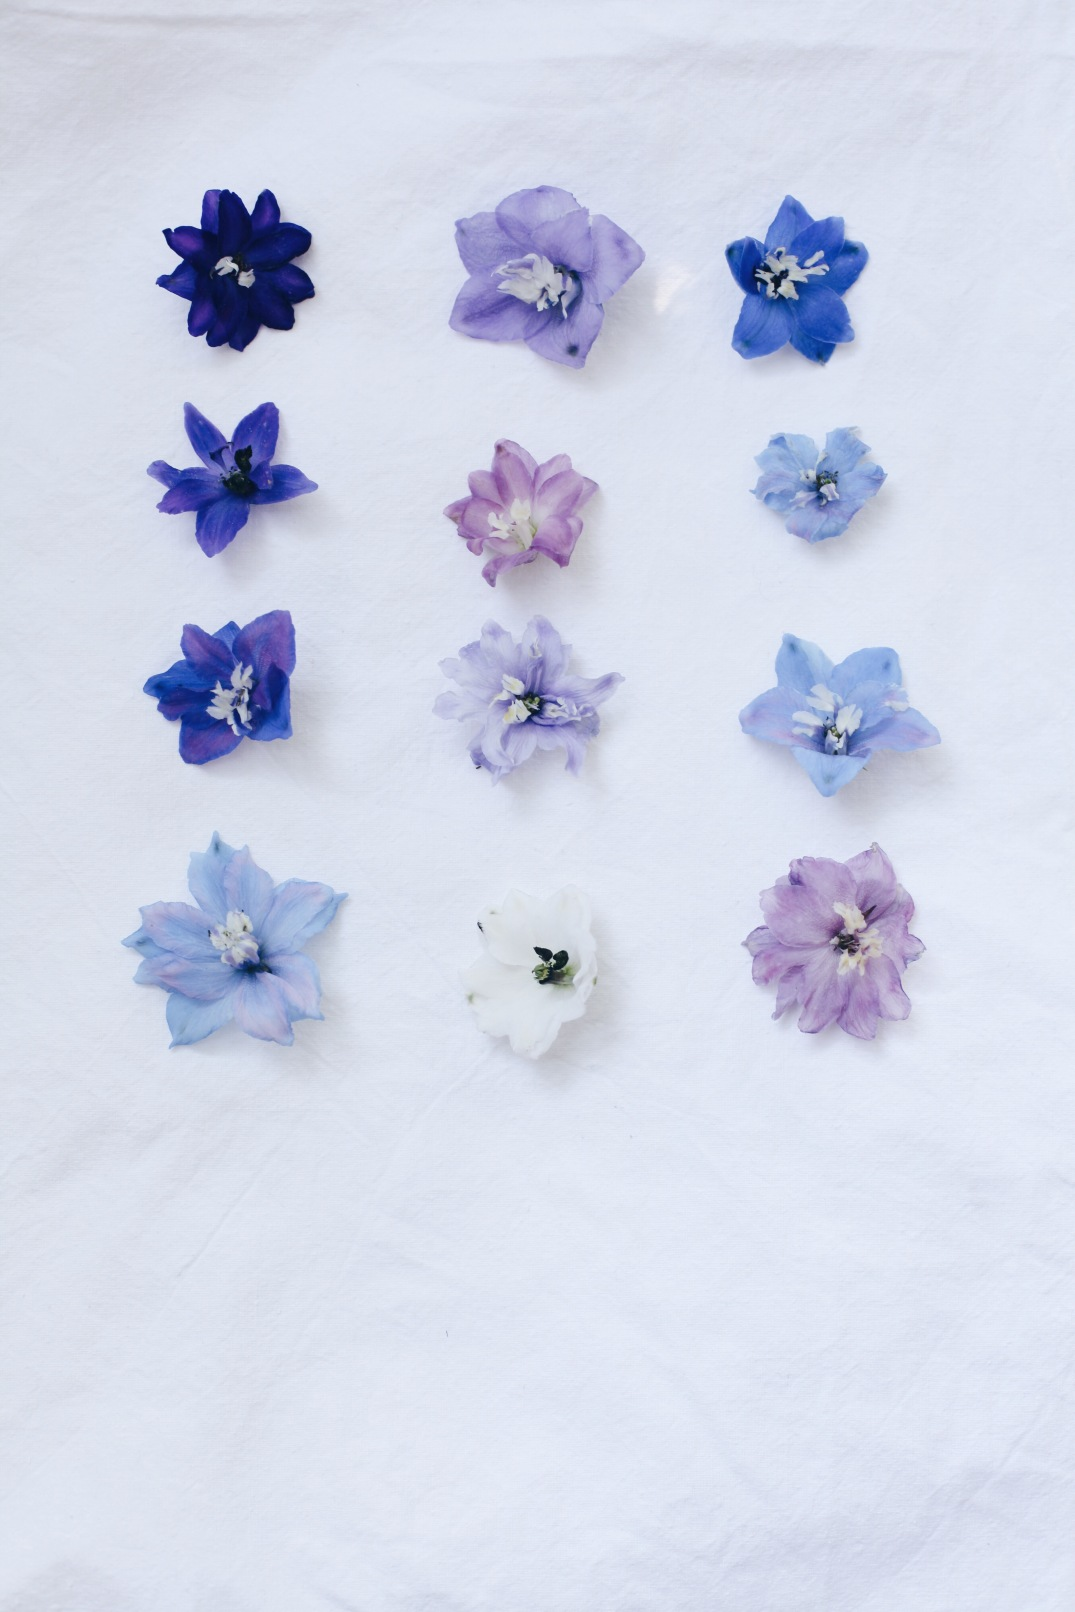 varieties of delphinium